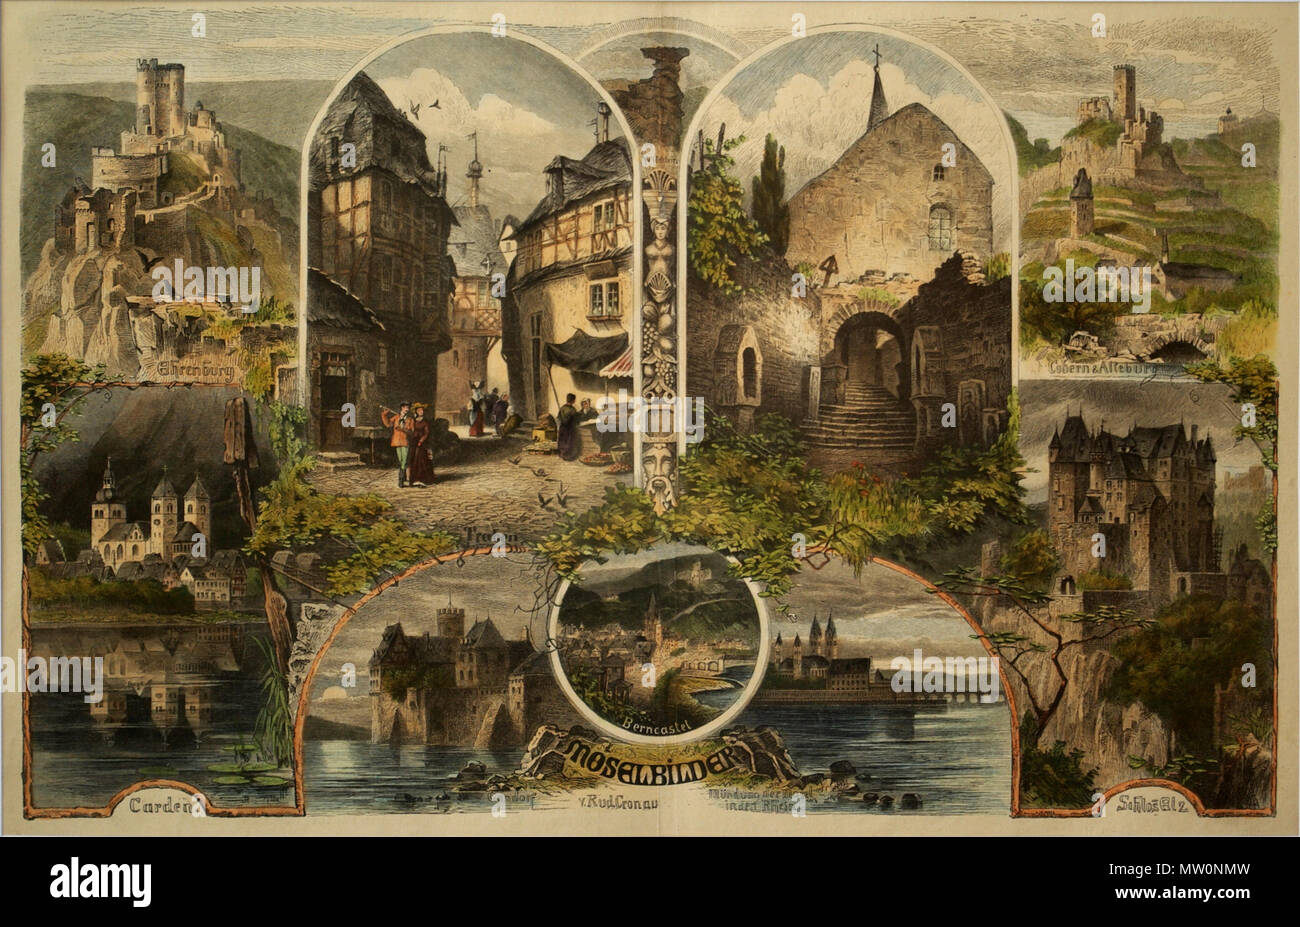 . English: Pictures of the mosel Deutsch: Moselbilder . 1874. Rud. Cronau 426 Mosel BW 1 - Stock Image